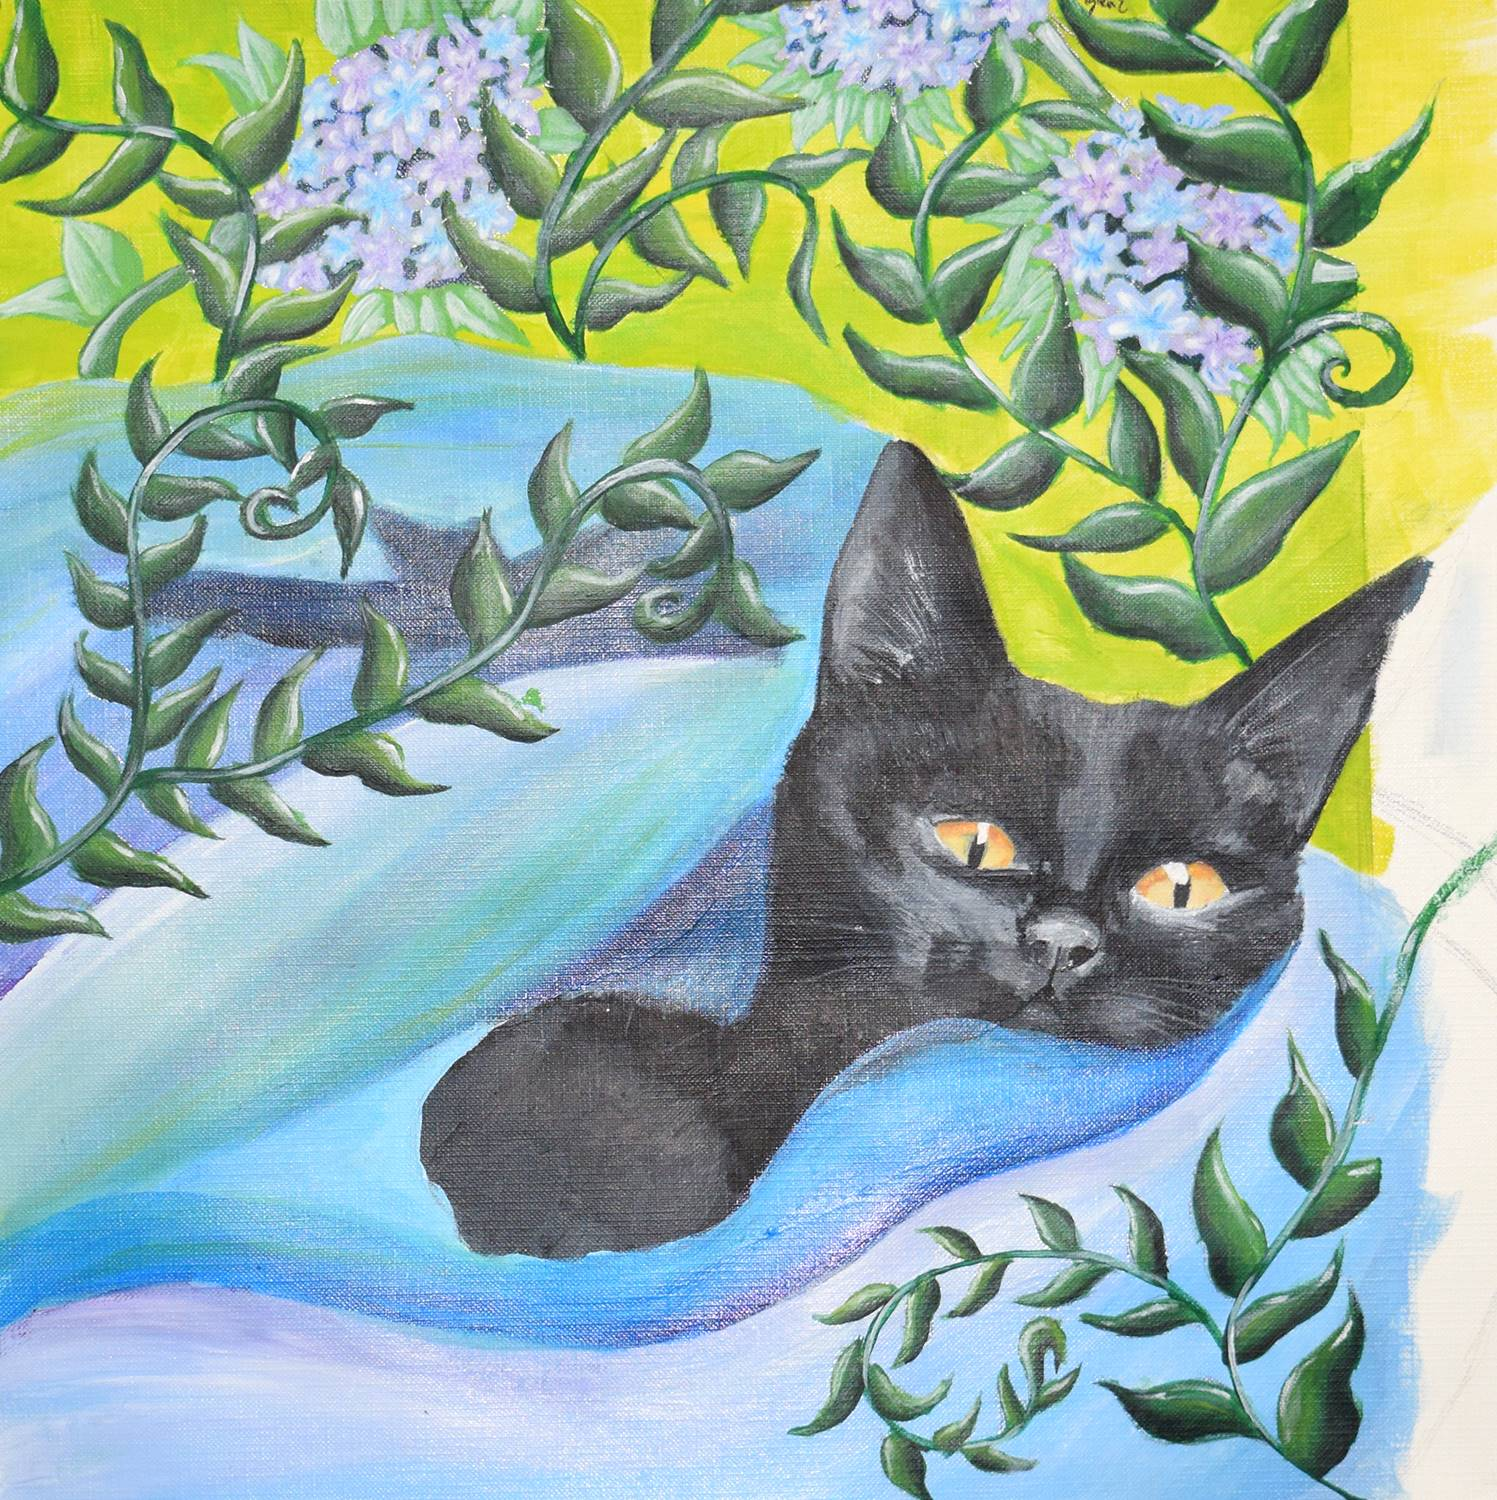 A black cat in blue blanket with lilacs around it.